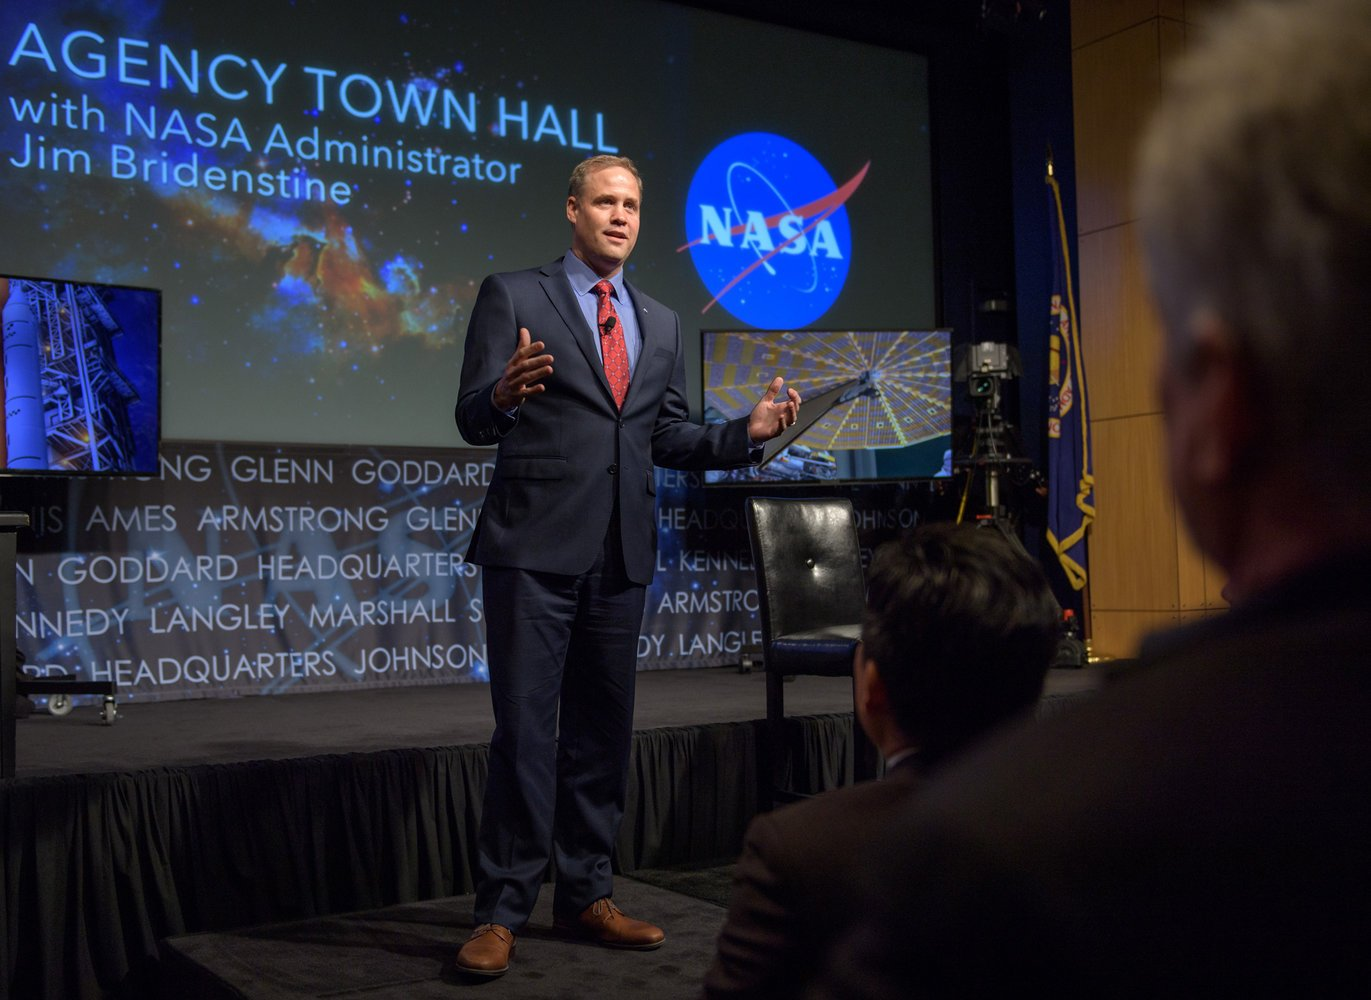 New NASA Chief Bridenstine Says Humans Contribute to Climate Change 'in a Major Way' https://t.co/YpgmLmYLwi https://t.co/bmGiDywzl5